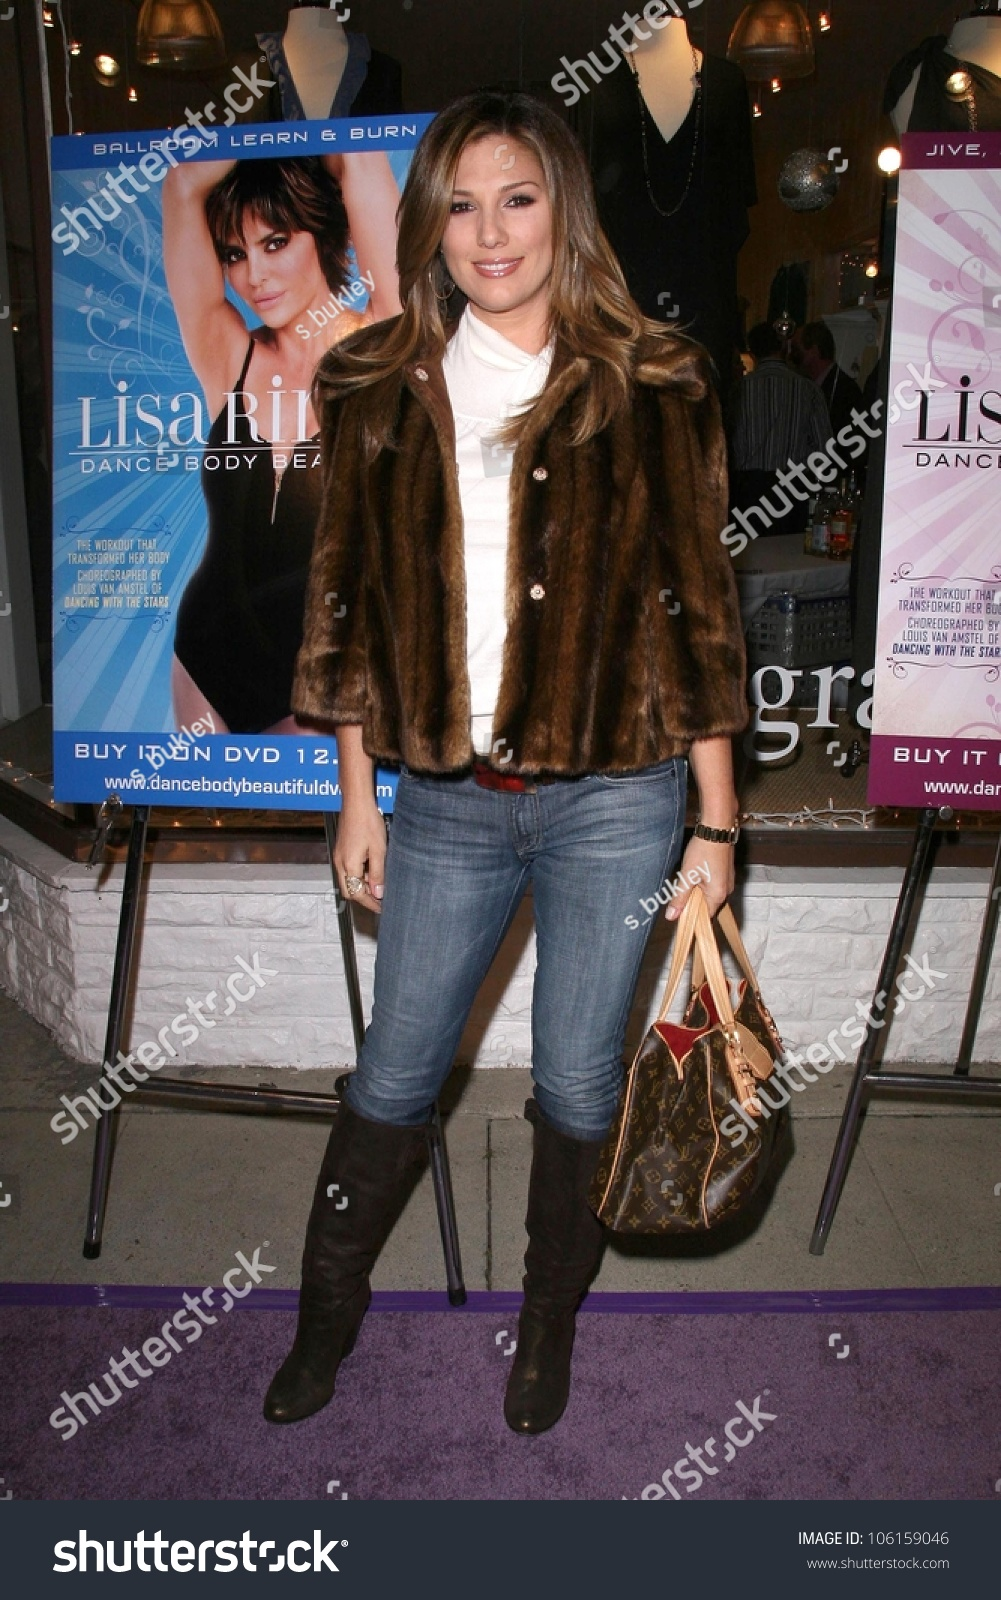 Daisy Fuentes Launch Party Dance Body Stock Photo Edit Now 106159046 Последние твиты от daisy fuentes marx (@daisyfuentes). https www shutterstock com image photo daisy fuentes launch party dance body 106159046